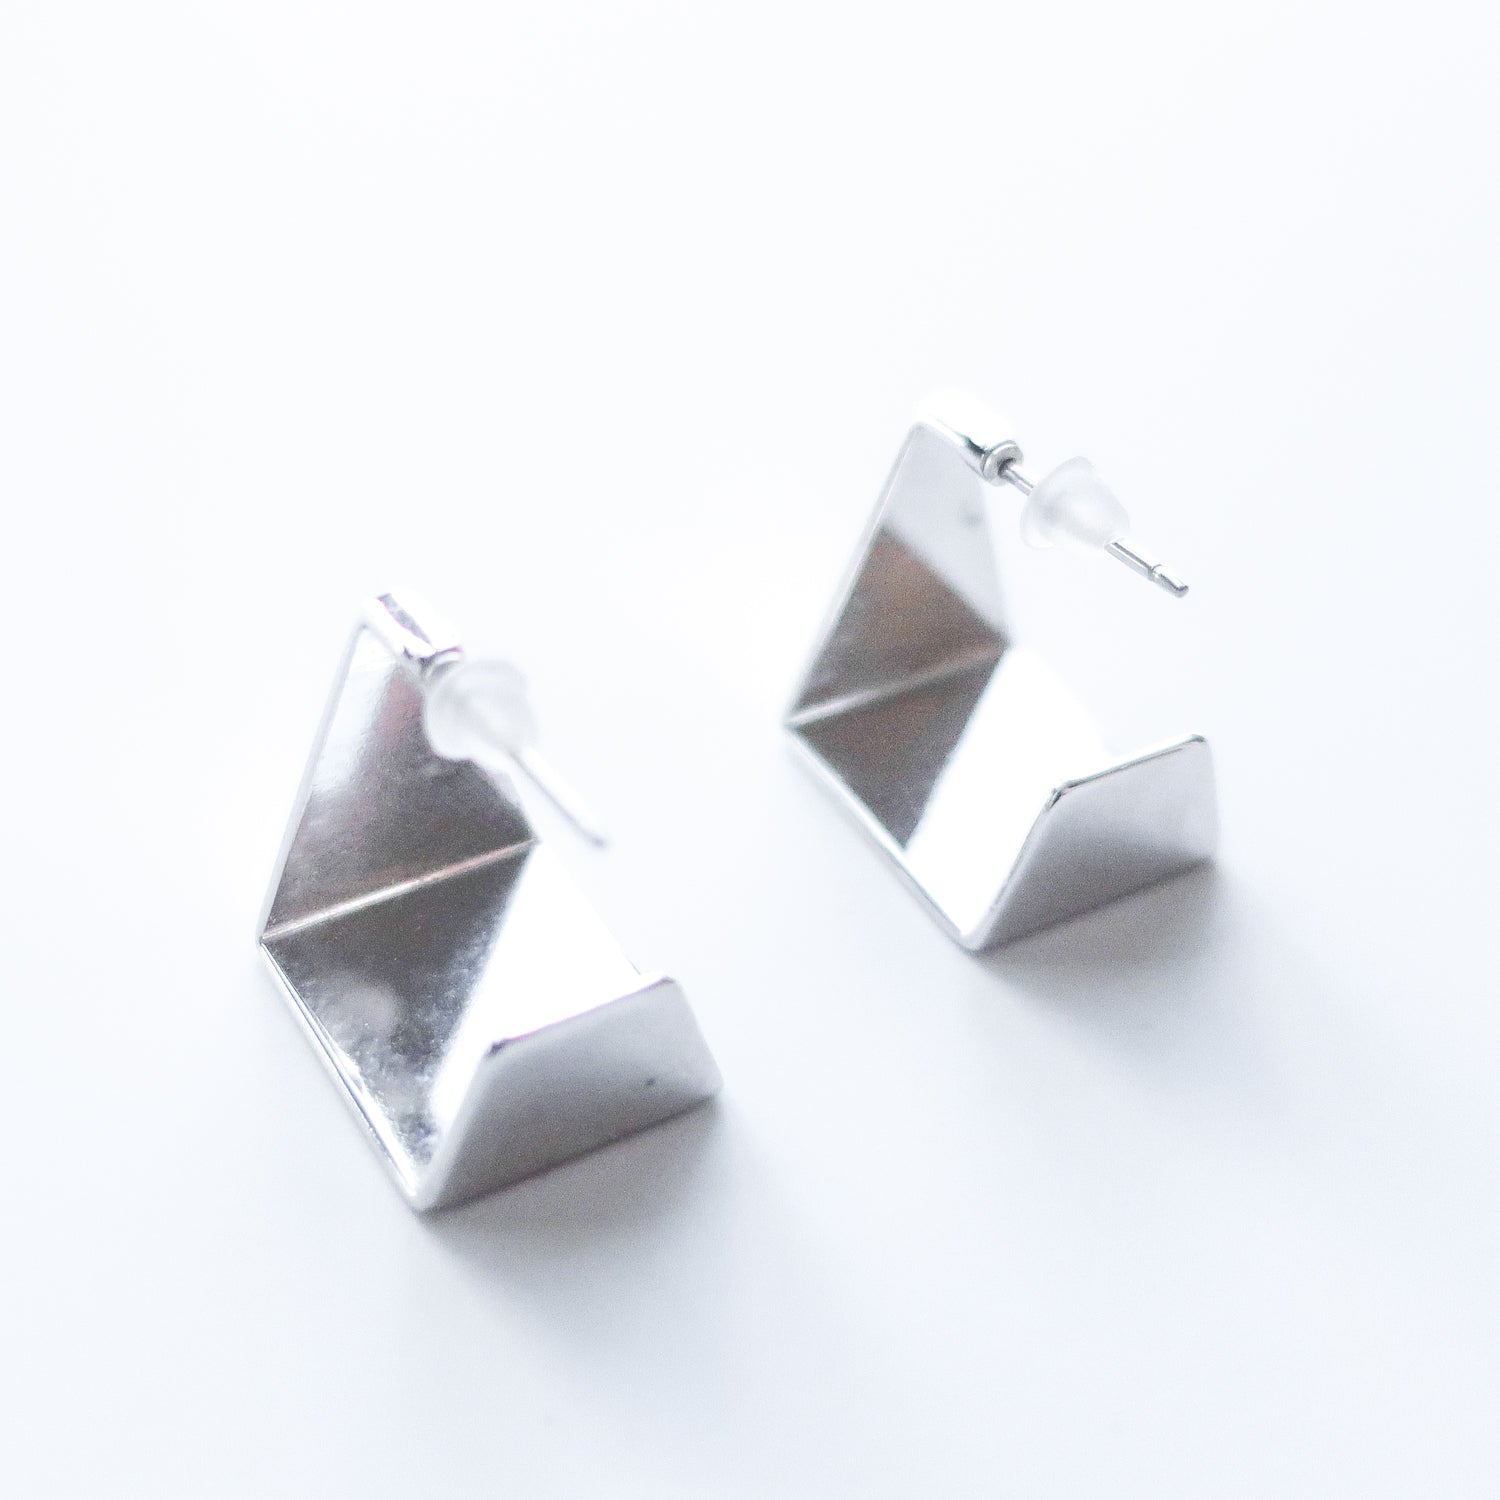 "Second Room Vintage Clothing. Vintage silver tone, triangle and square shaped open hoop earrings. These earrings are 1/2"" all around. Free North American shipping on all orders."